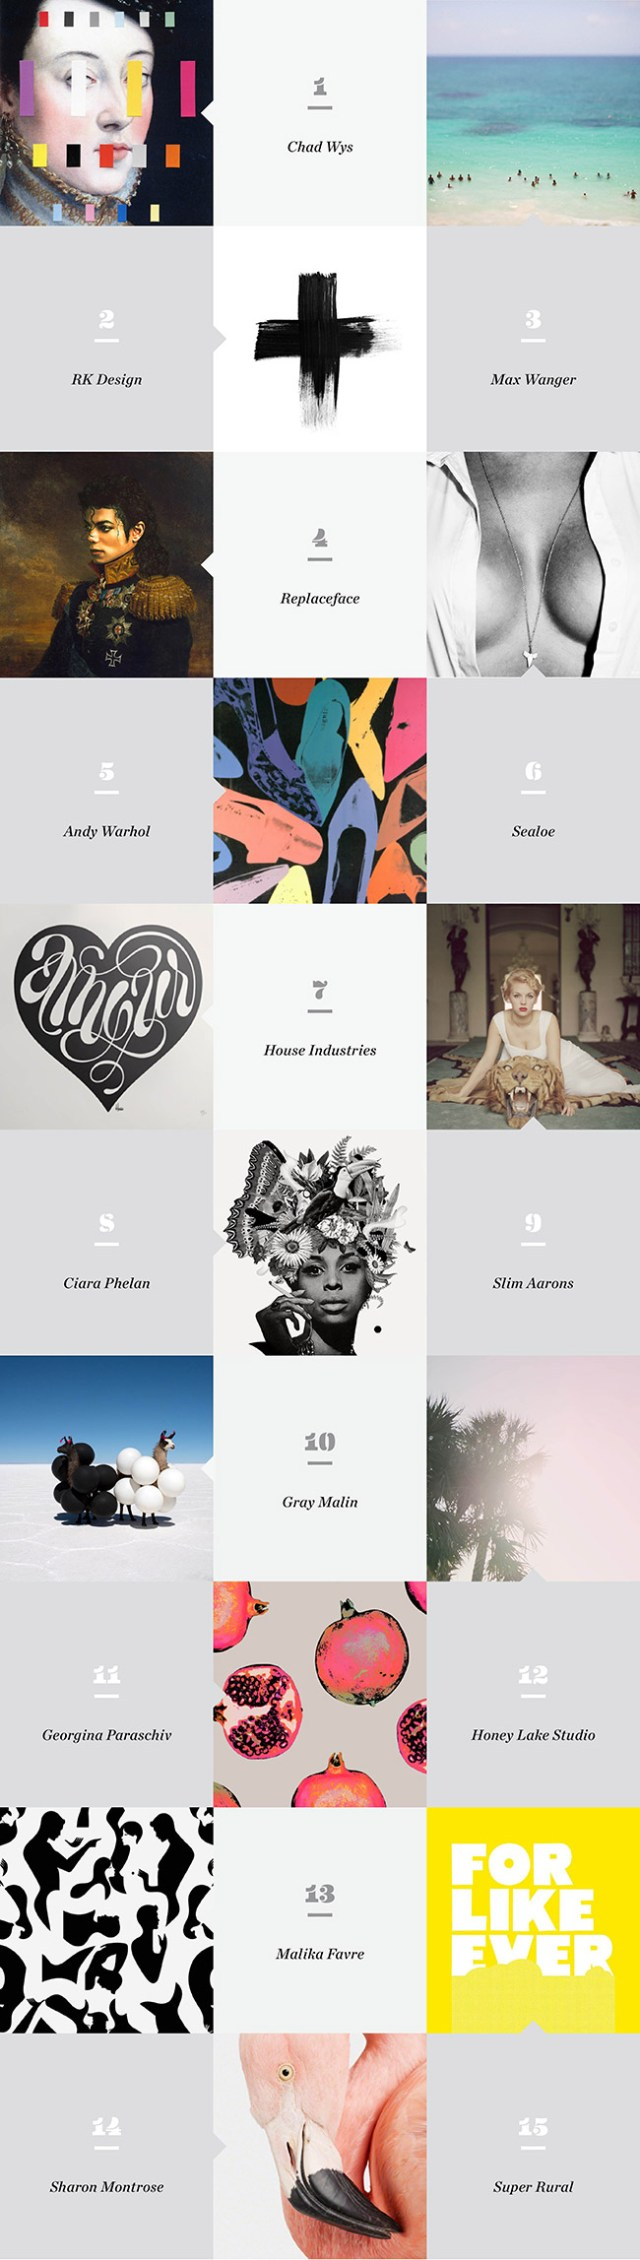 Nubby Twiglet | Anatomy Of An Office #2: 15 Awesome Artists To Cover Your Walls!